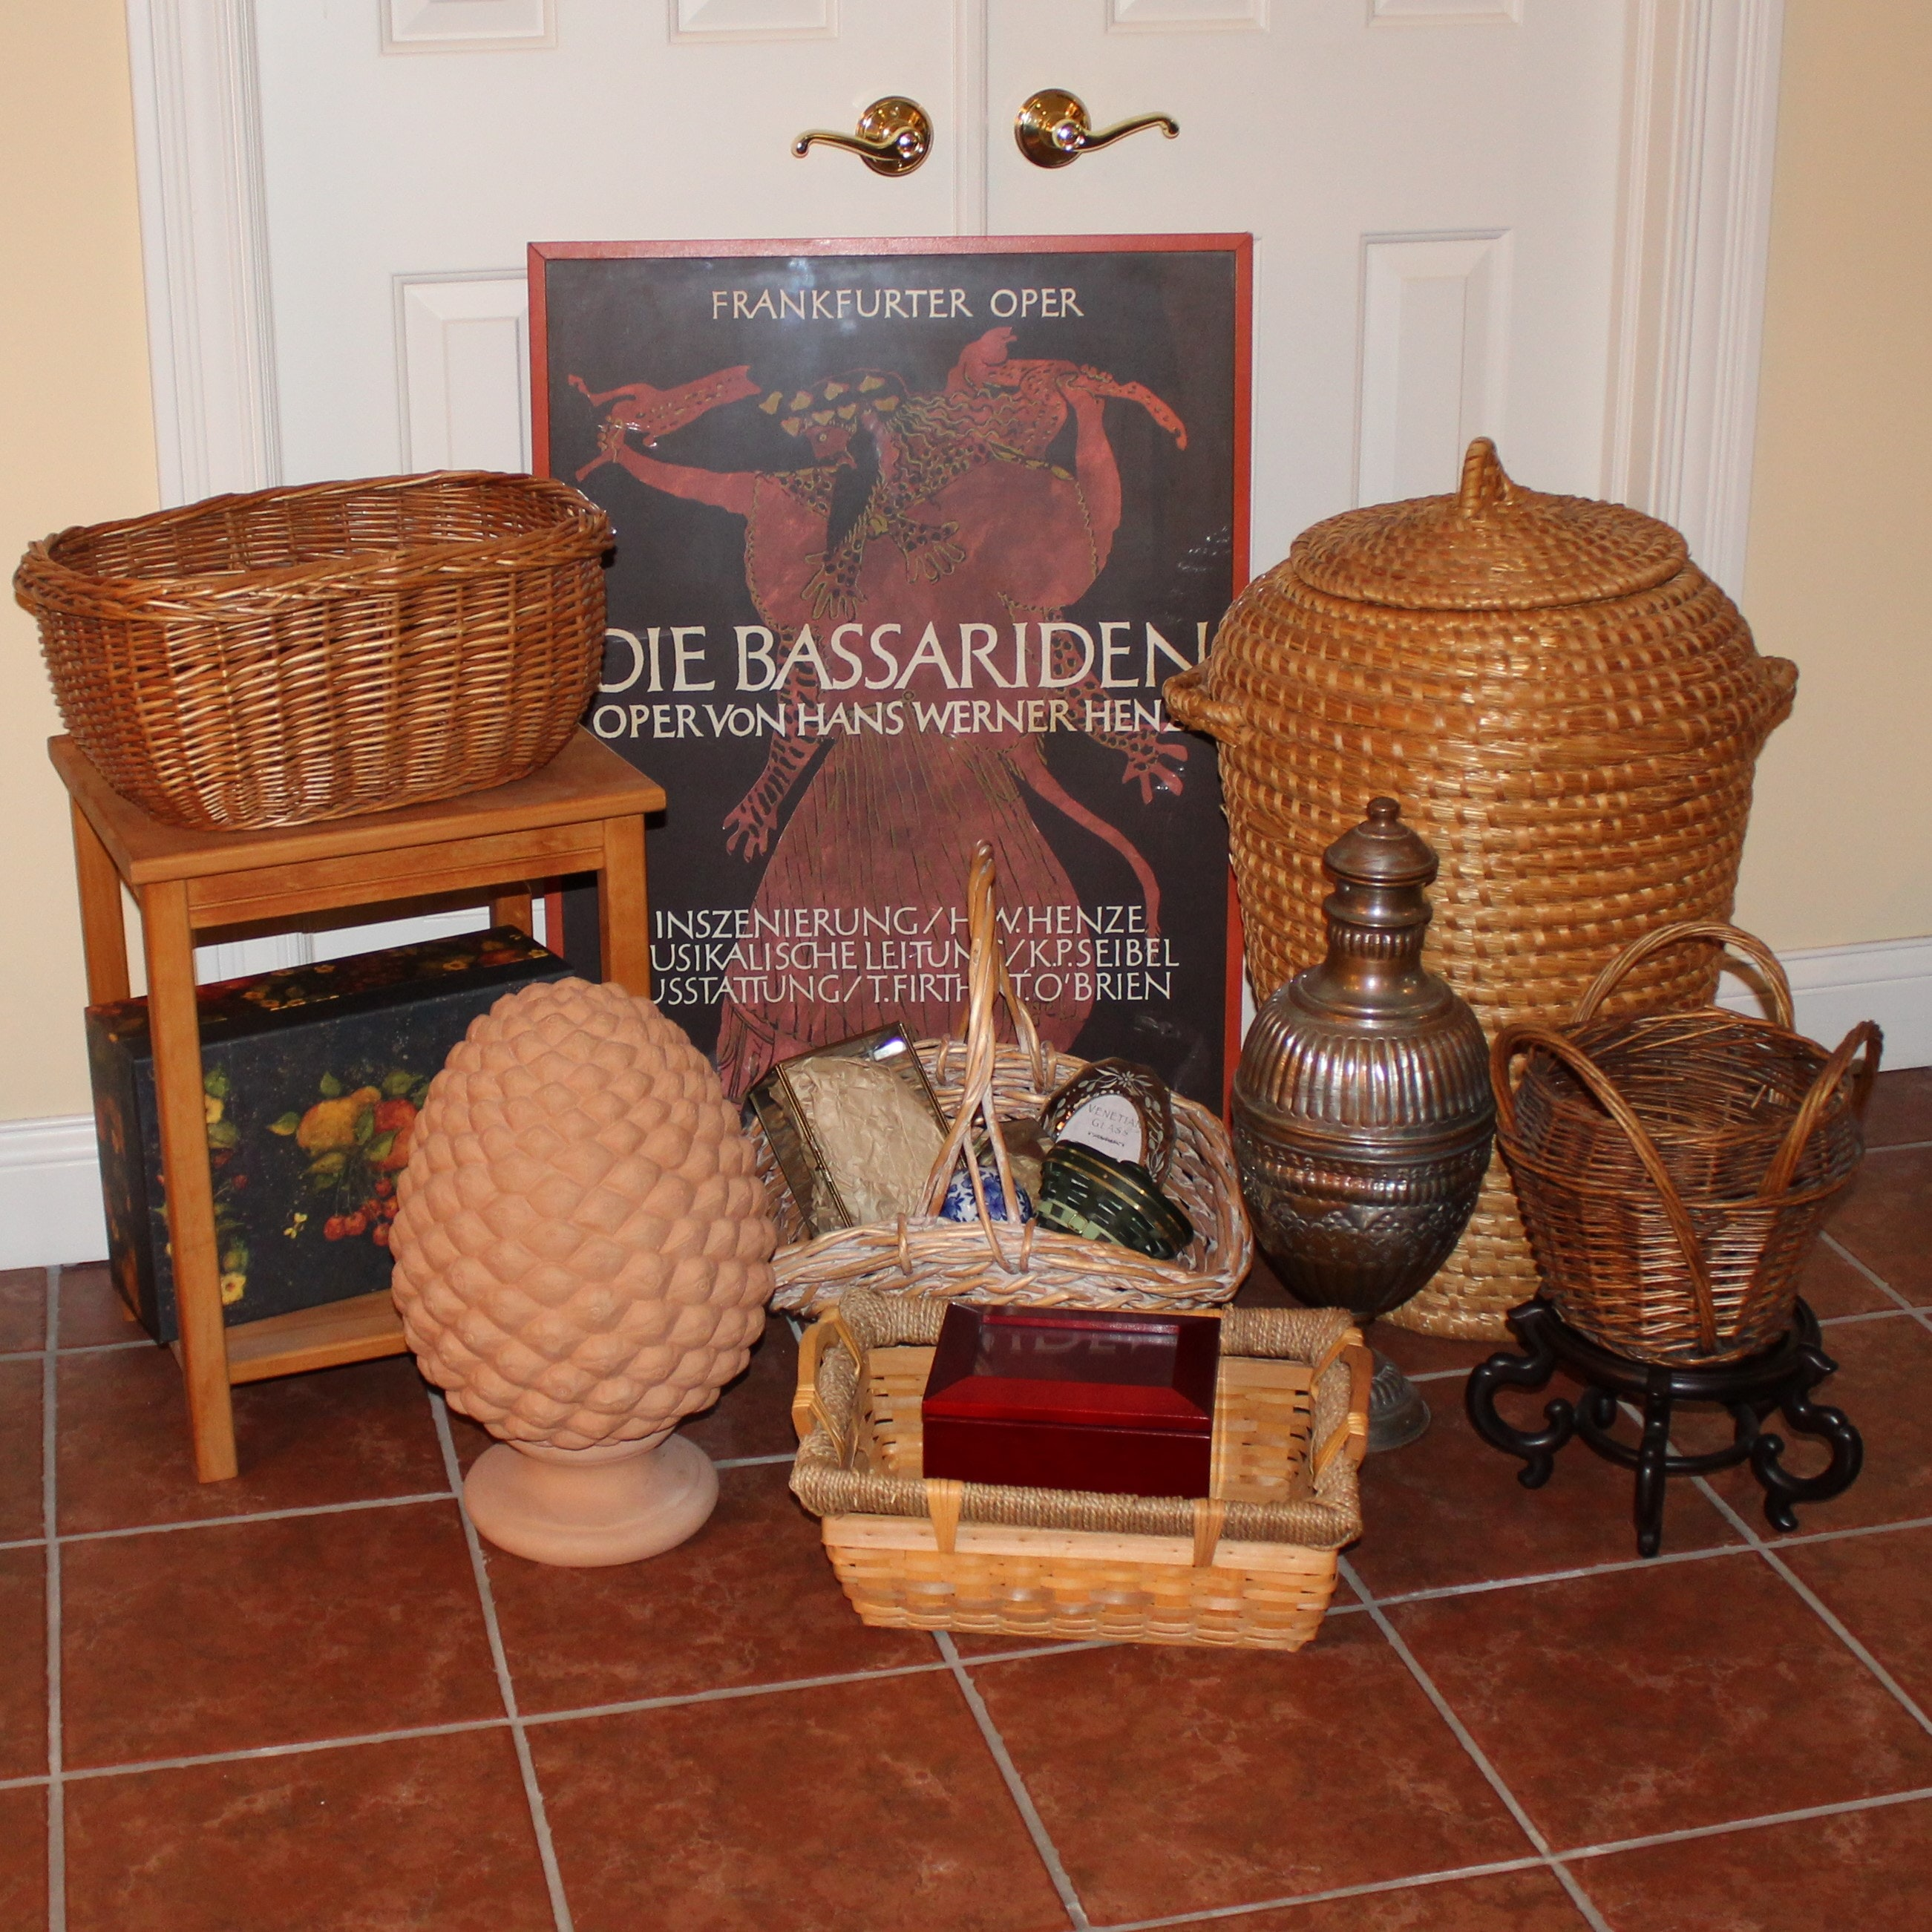 Baskets and Home Decor